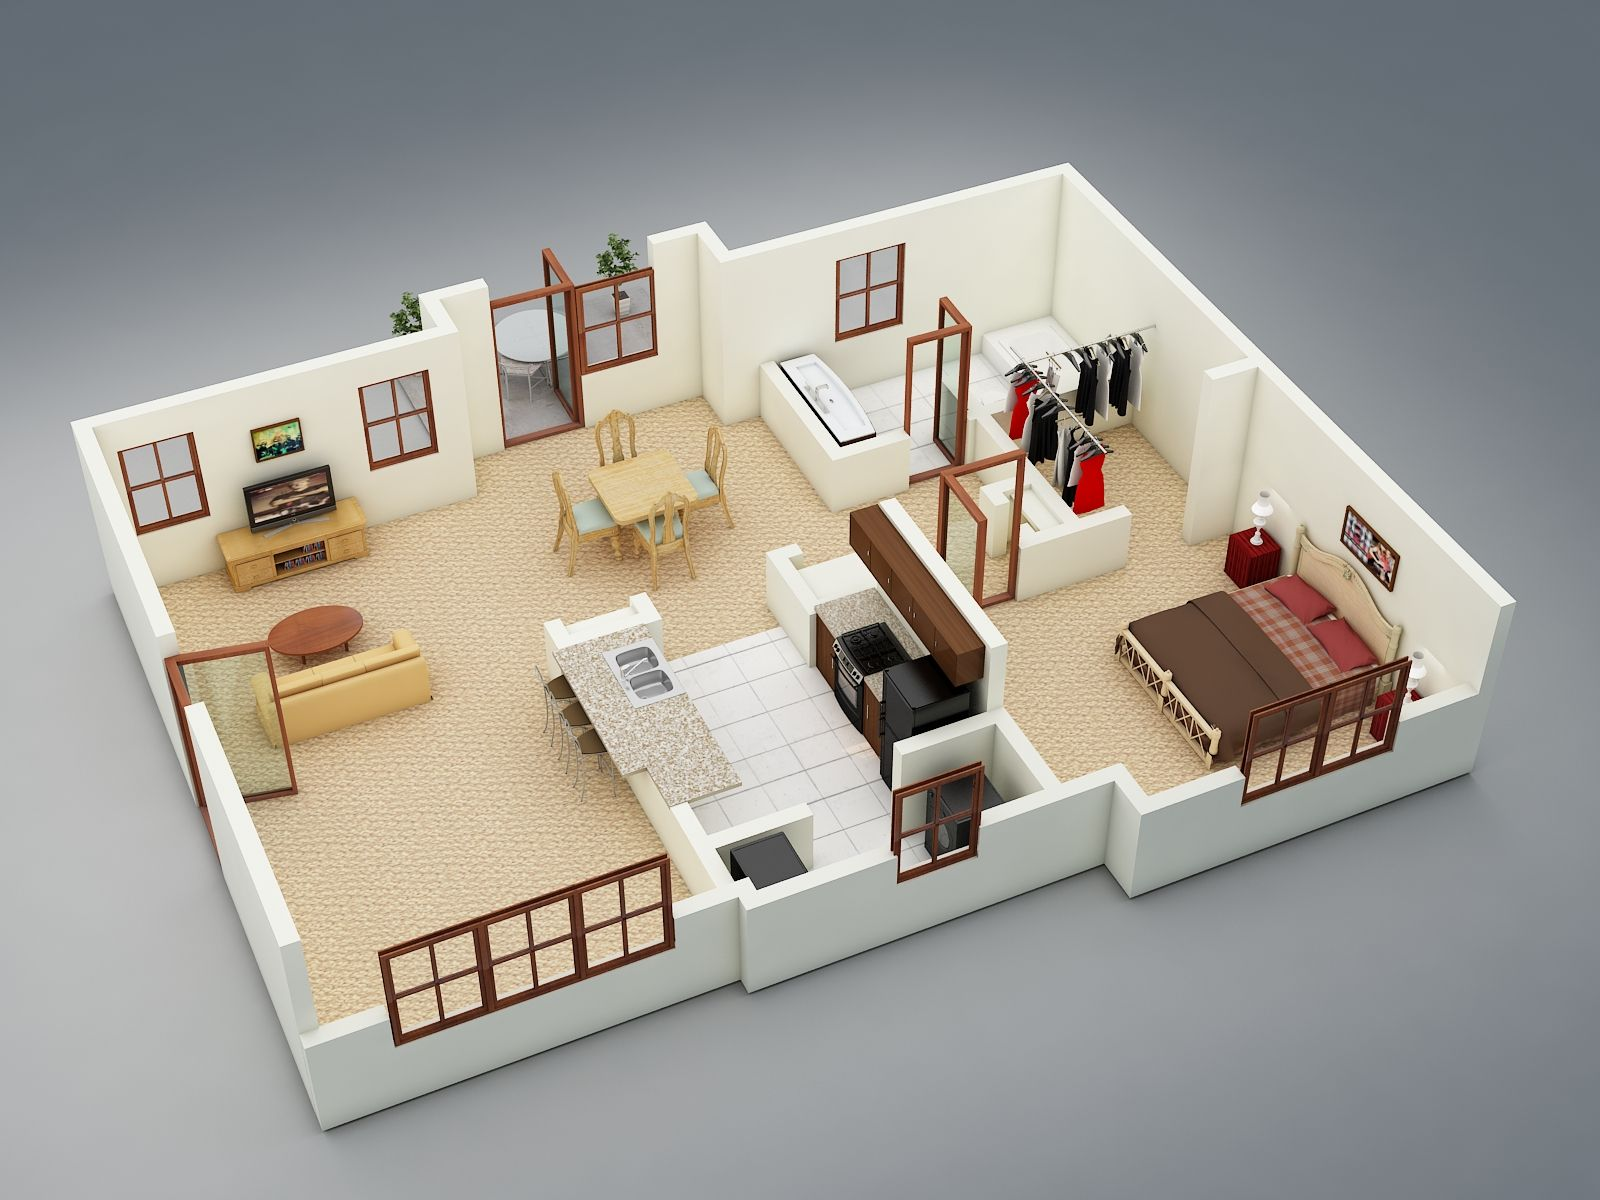 The Holly One Bedroom One Bath 975 Square Feet Attached Garage Renting A House Apartments For Rent One Bedroom